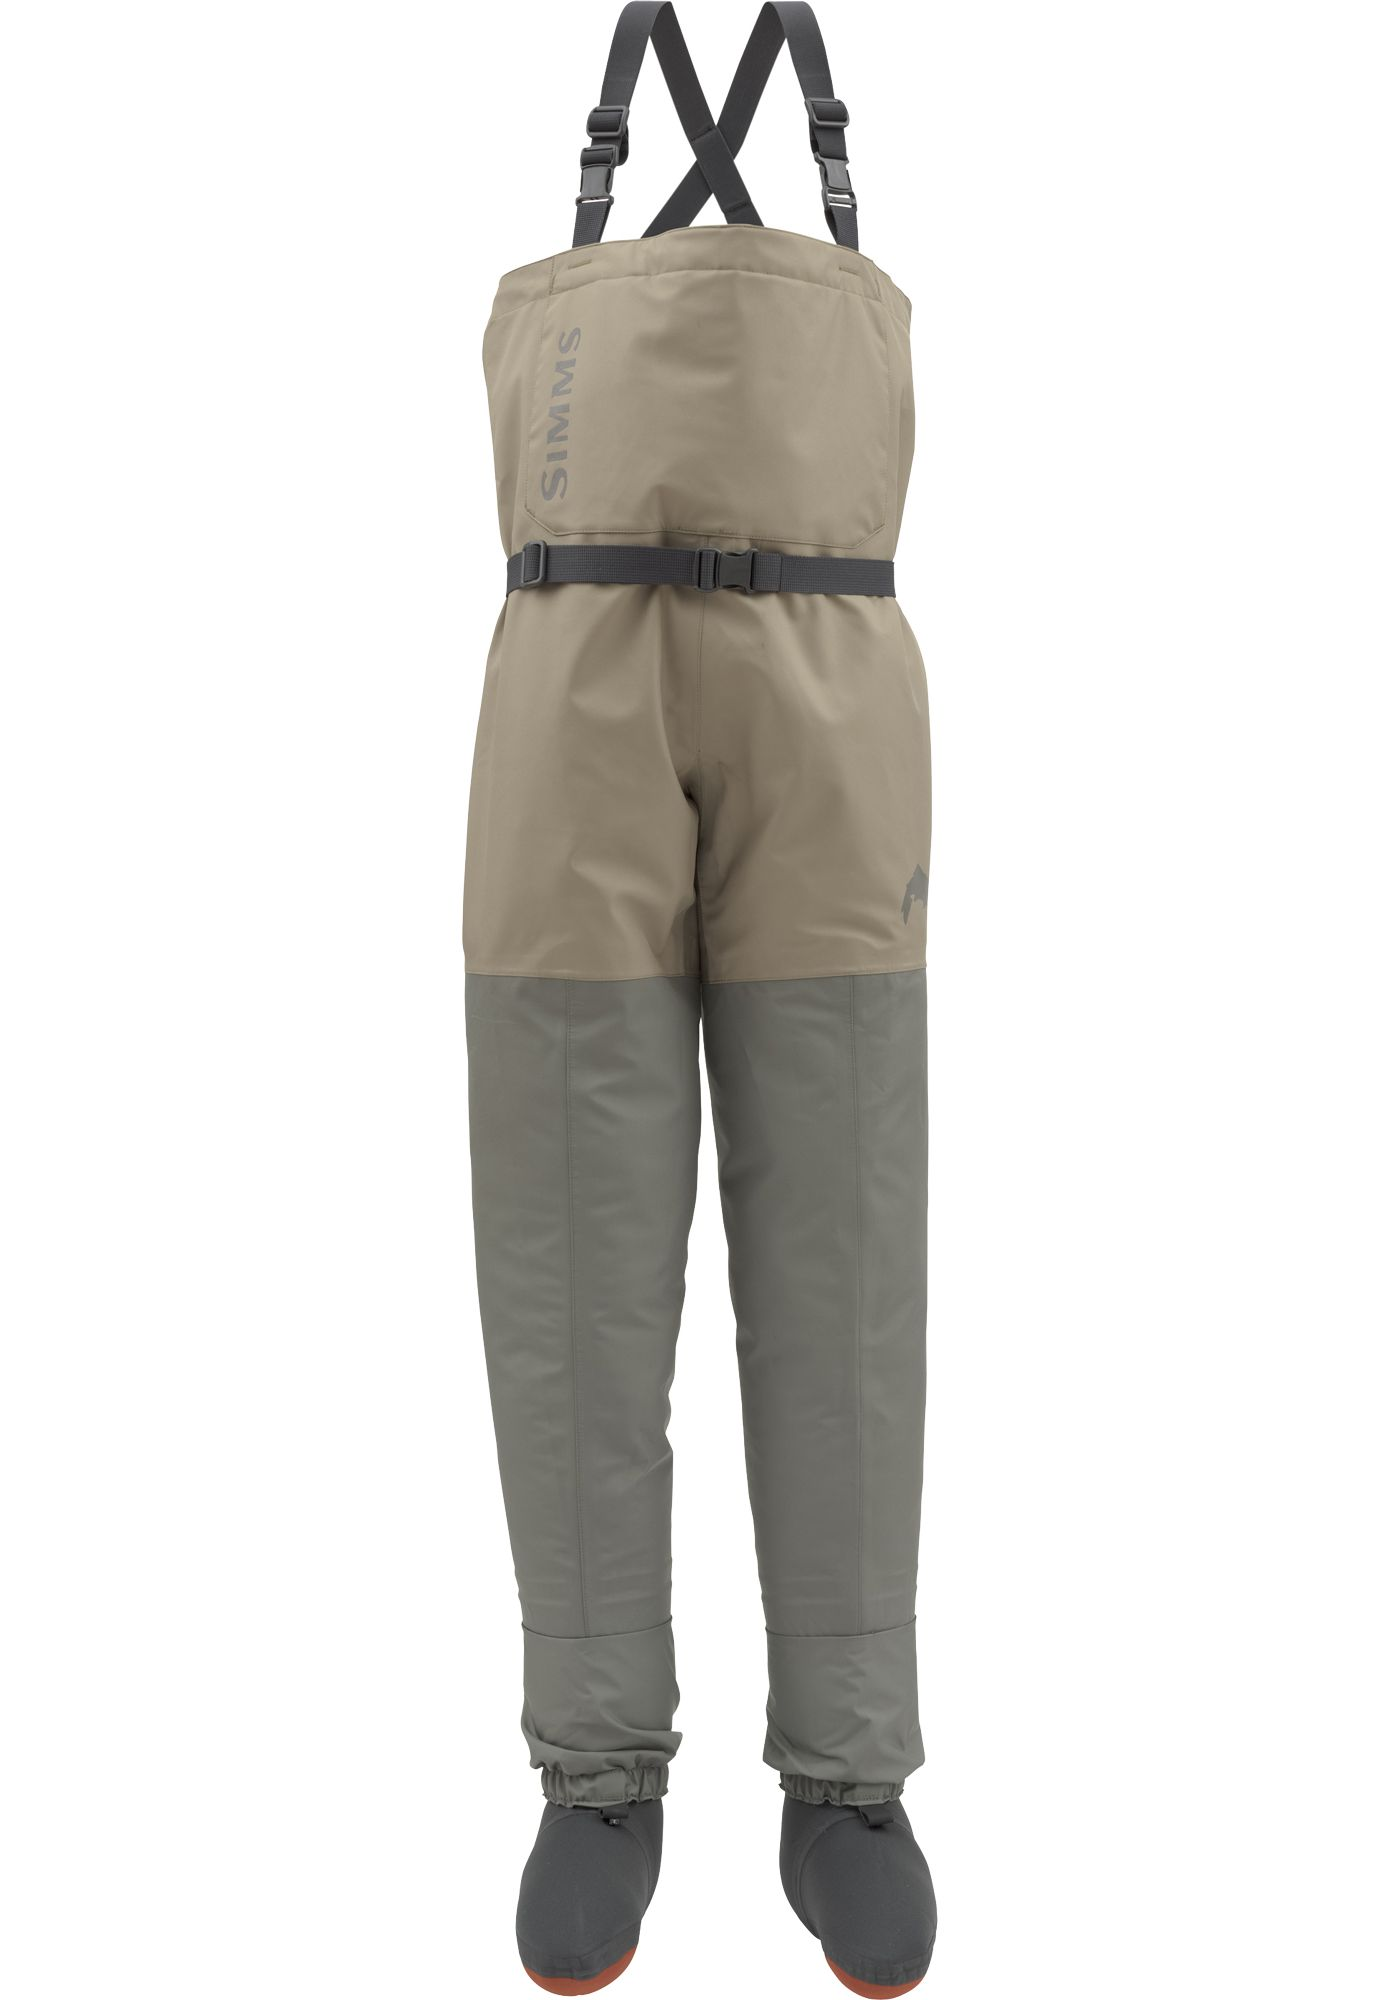 Simms Youth Tributary Chest Waders